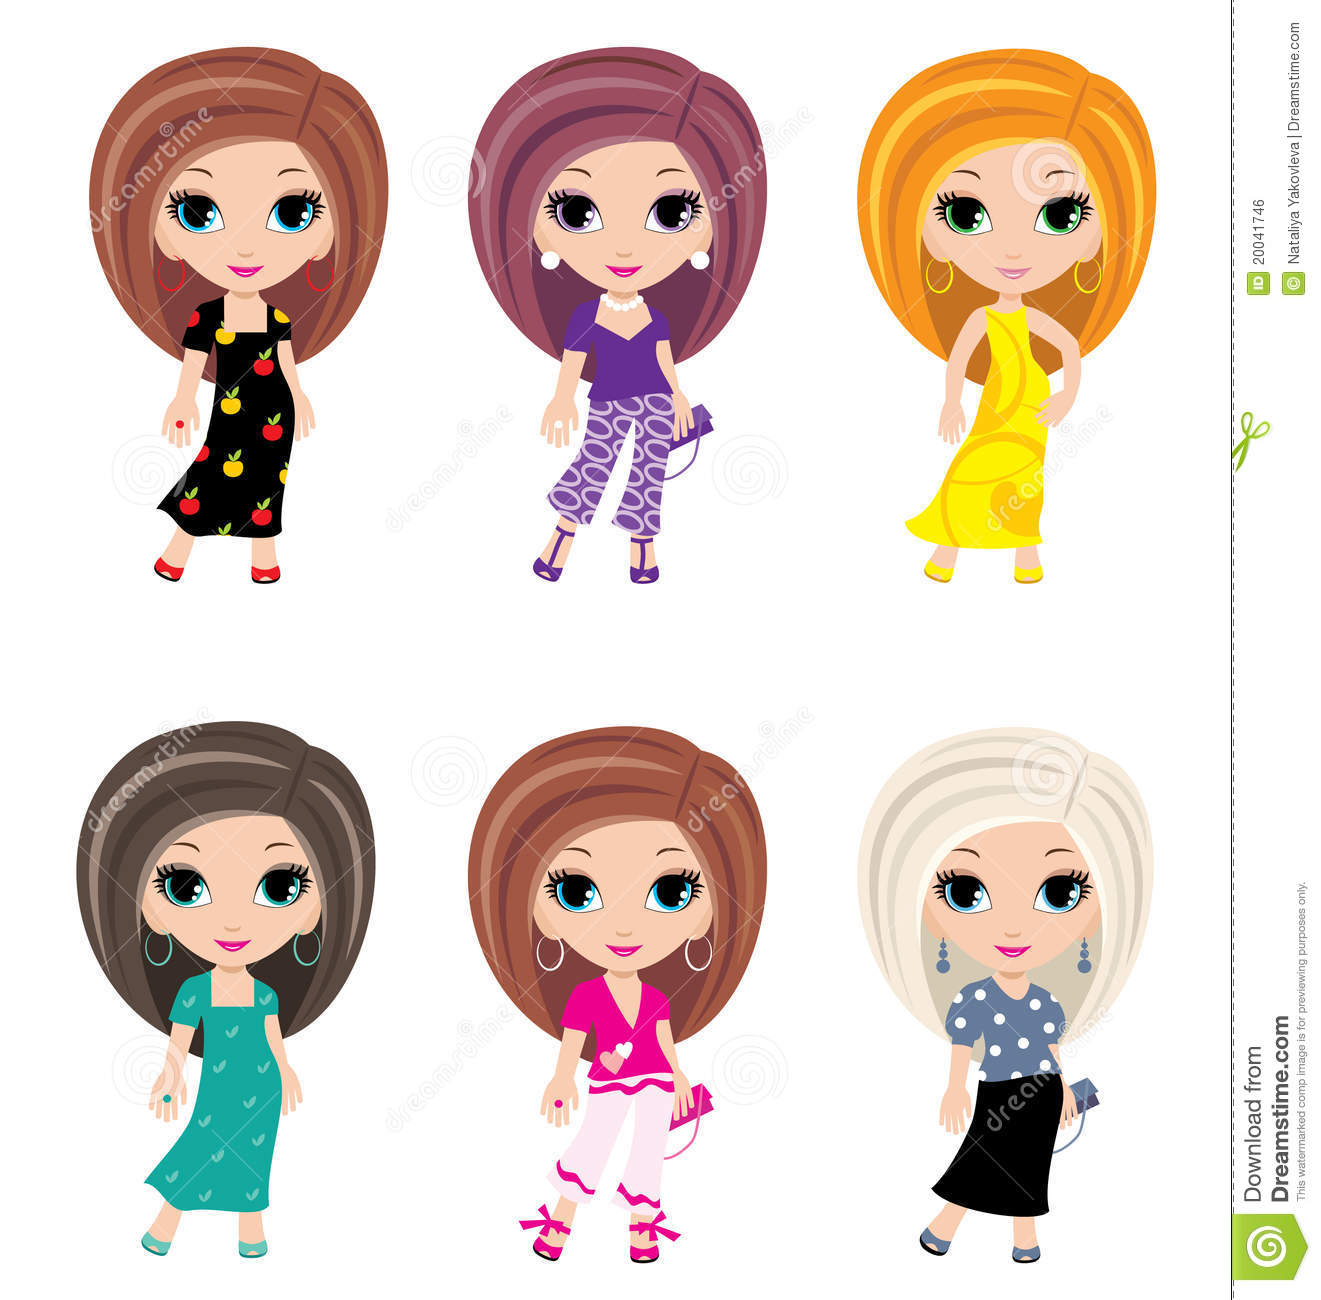 Girls Animated In Different Clothes Royalty Free Stock